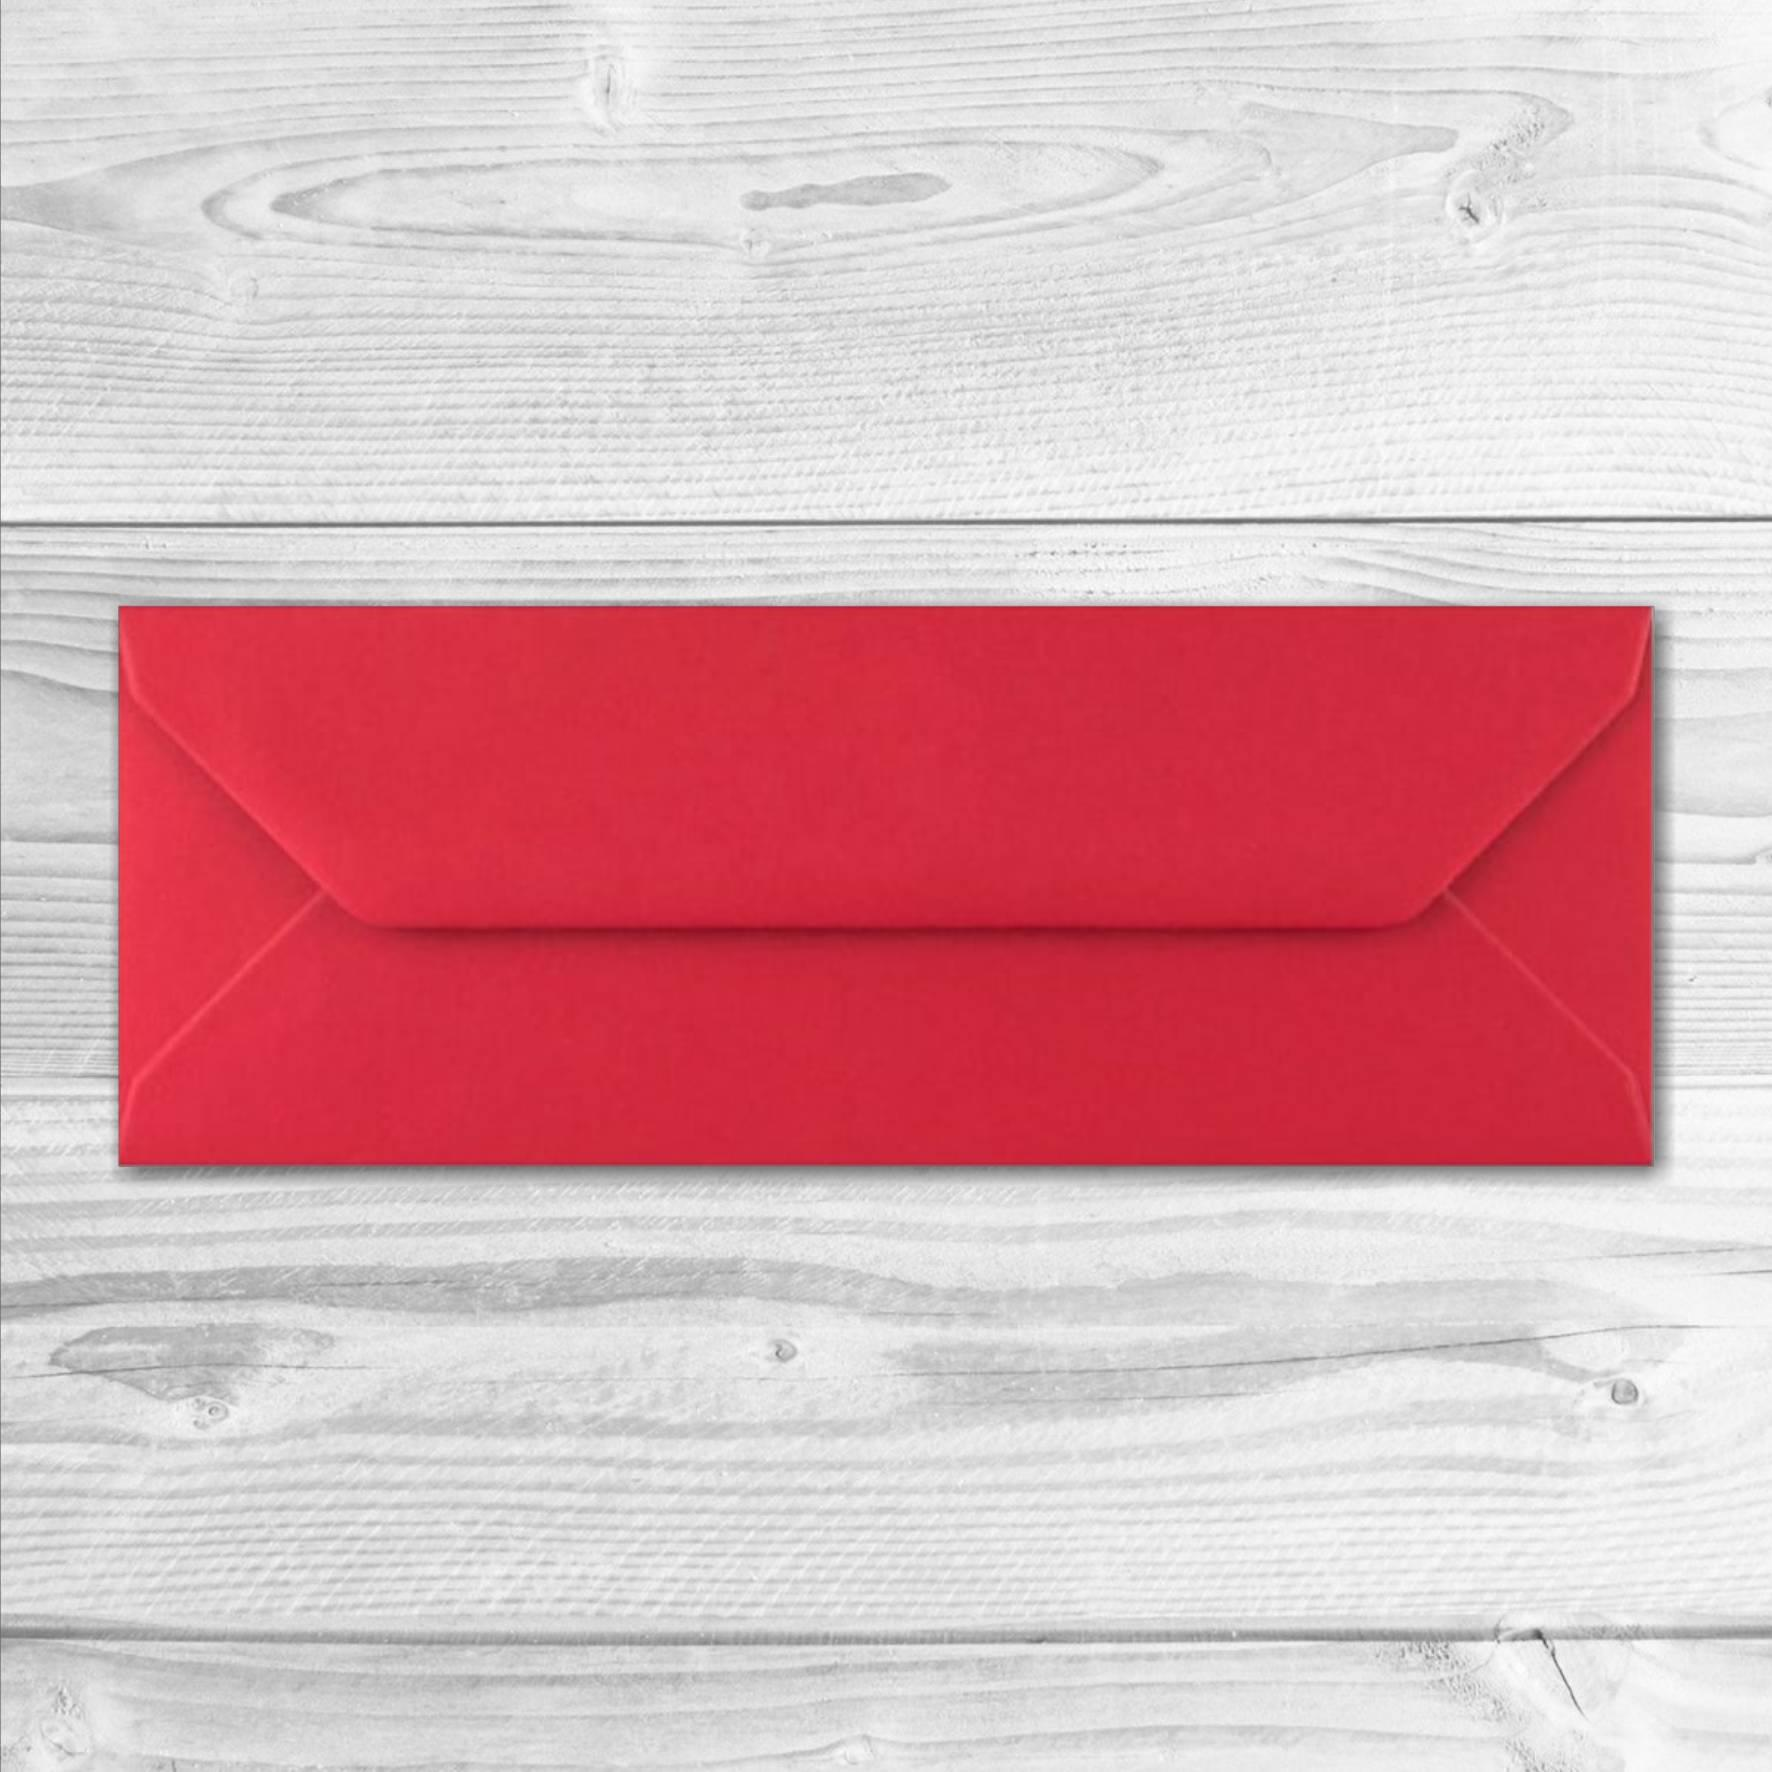 enveloppe rouge format marque-page